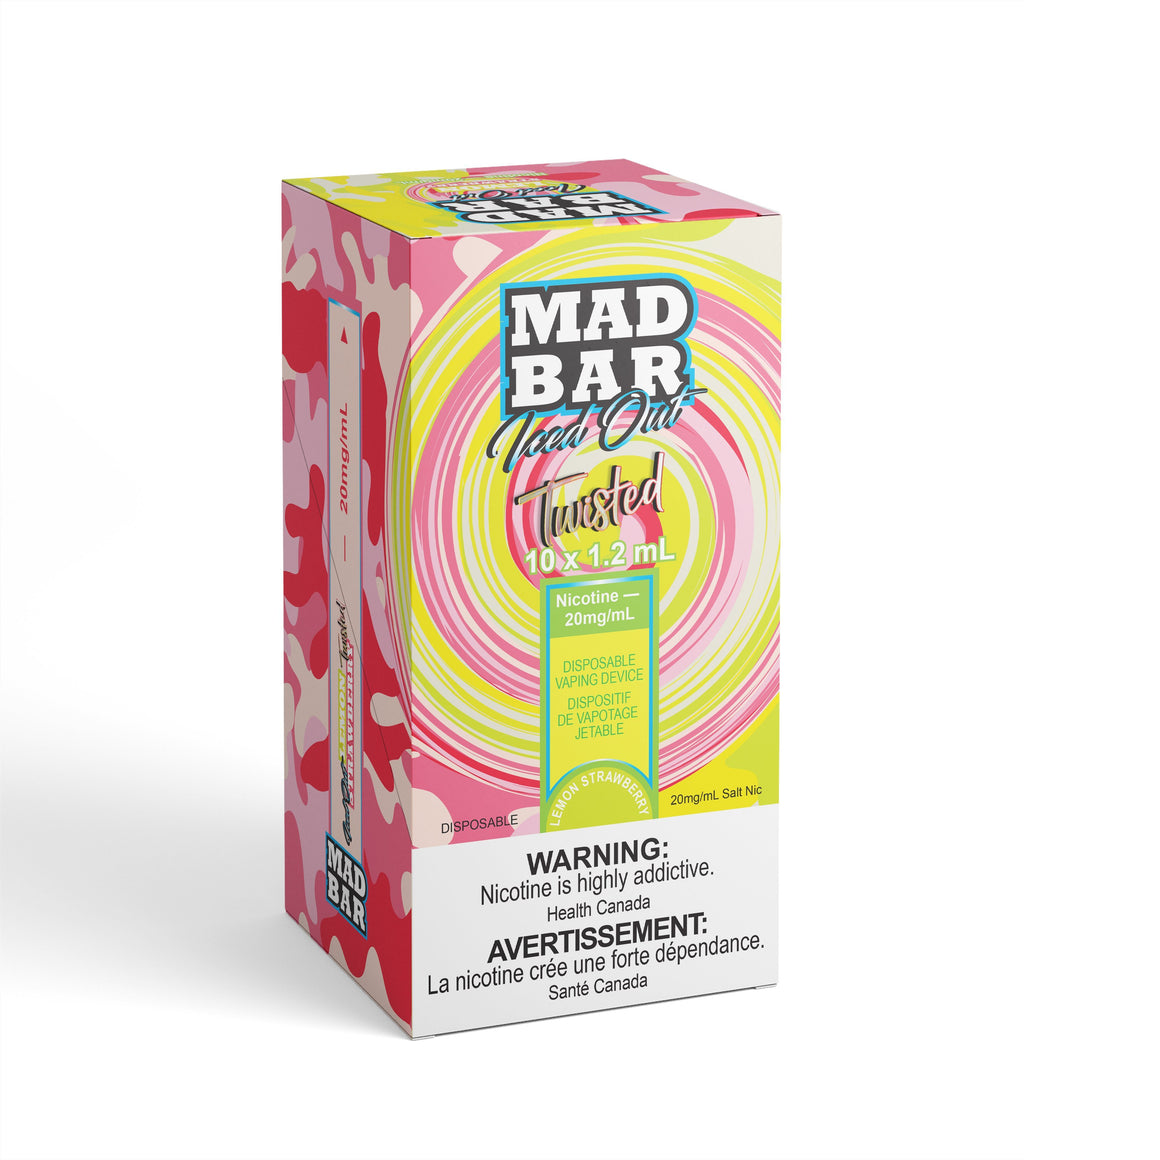 Mad Bar - Iced Out Twisted Lemon Strawberry